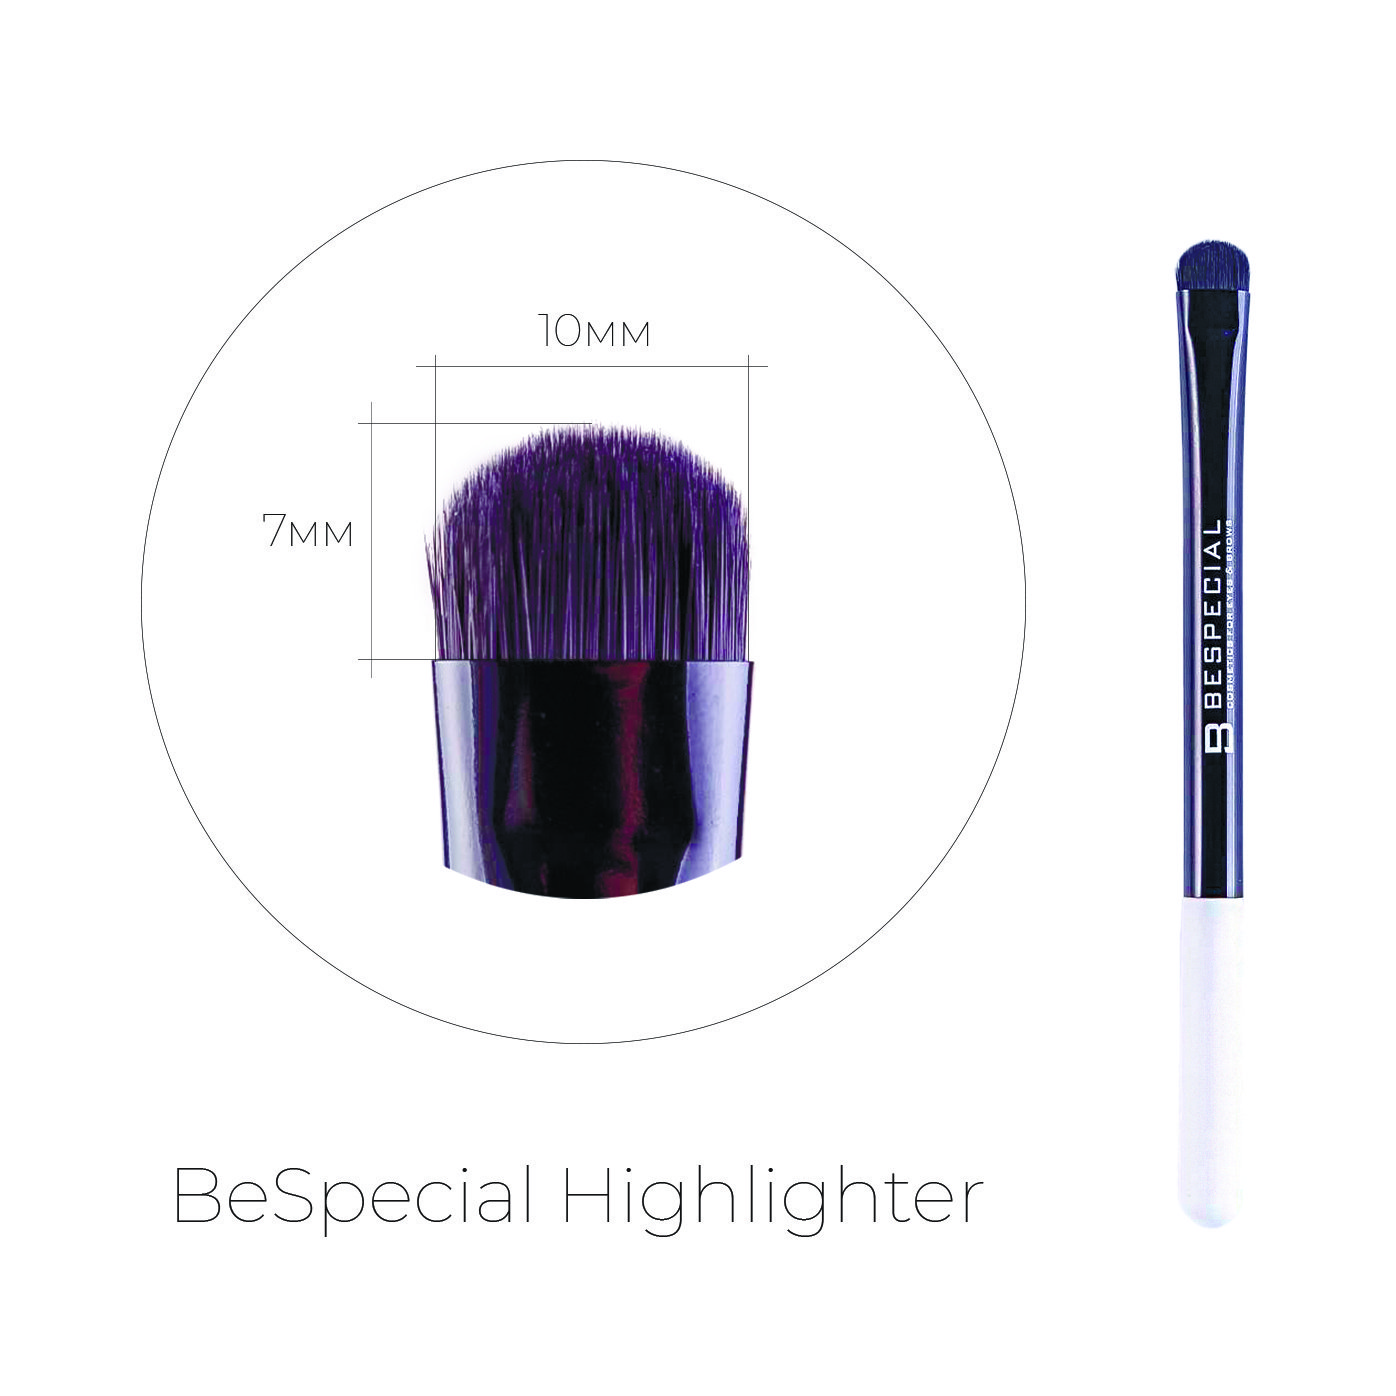 Кисть для бровей BeSpecial Highlighter в интернет-магазине Etomarta.com